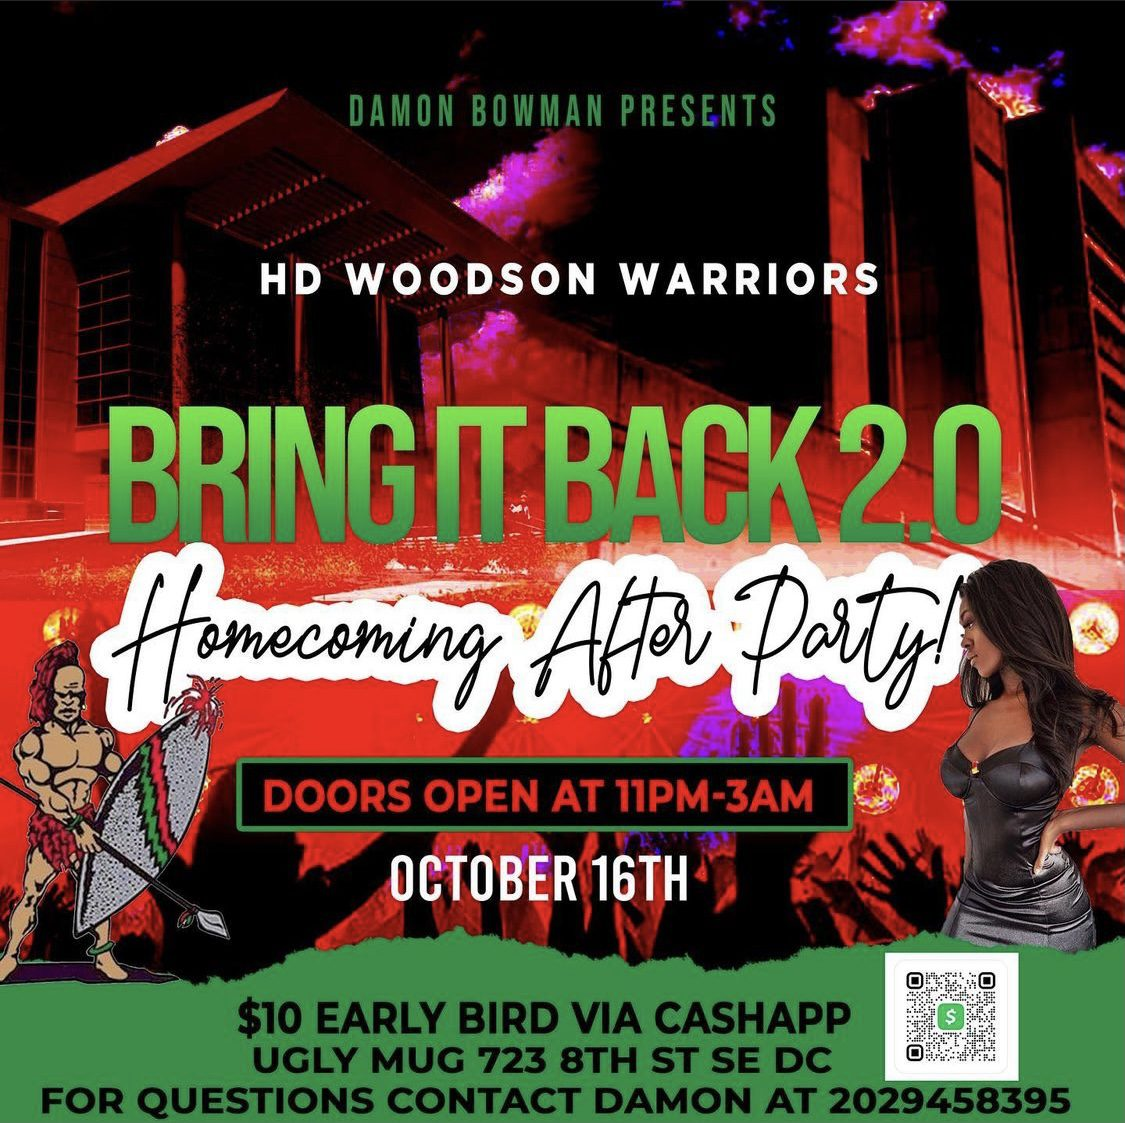 Homecoming After Party